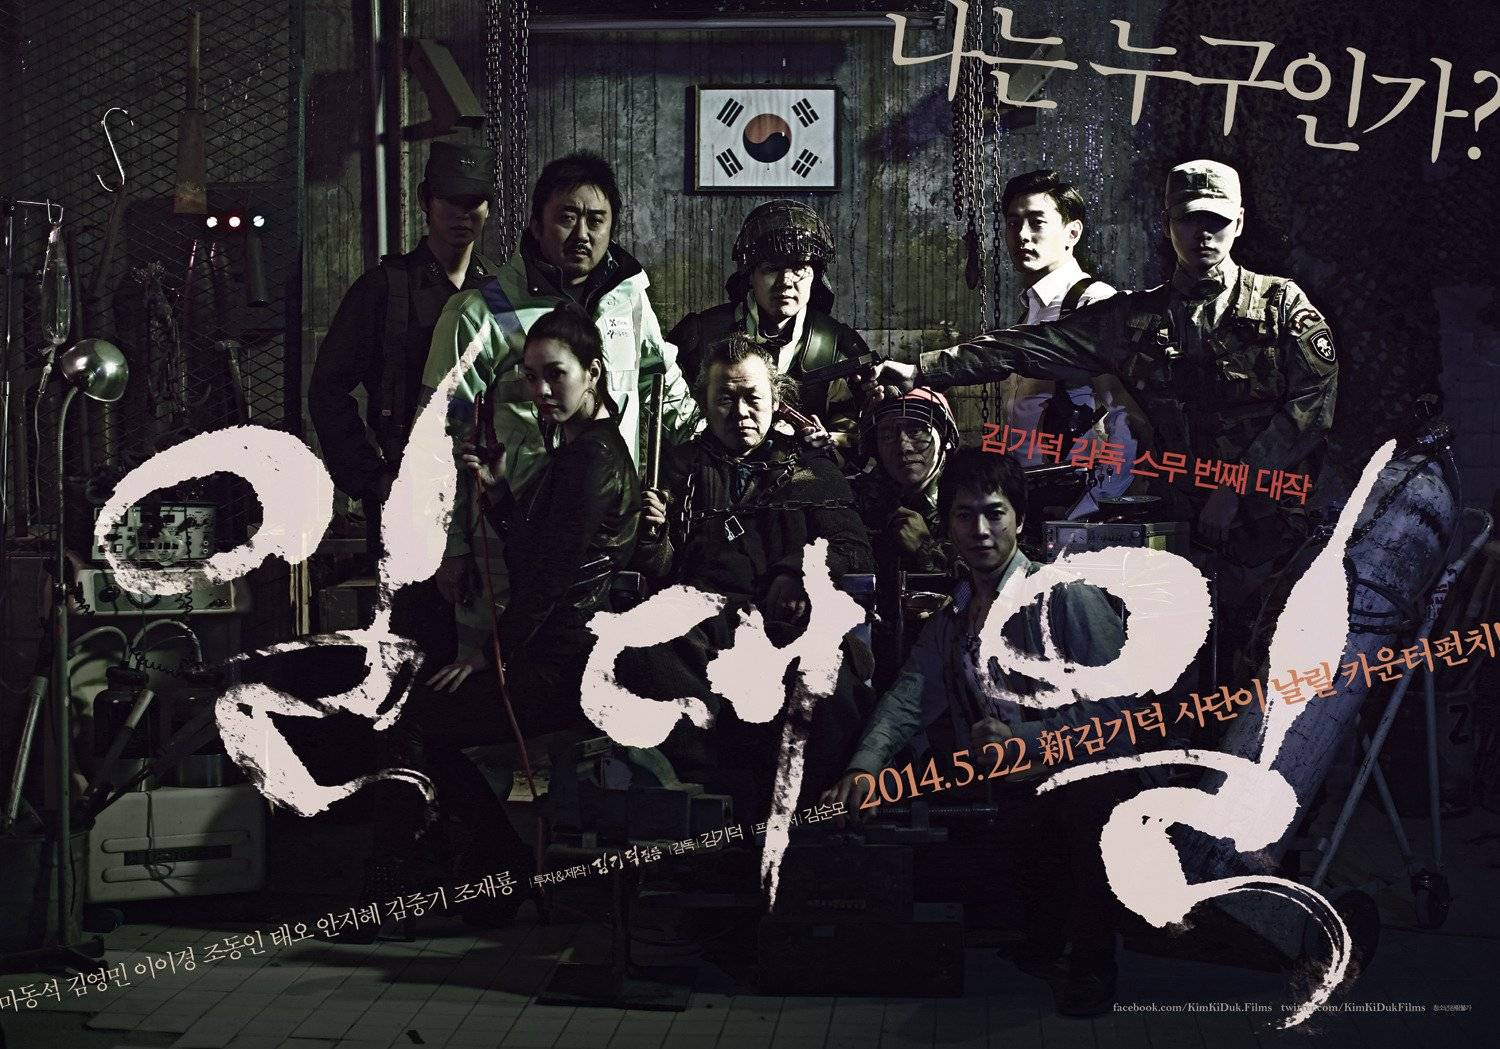 video added new trailer and poster for the korean movie